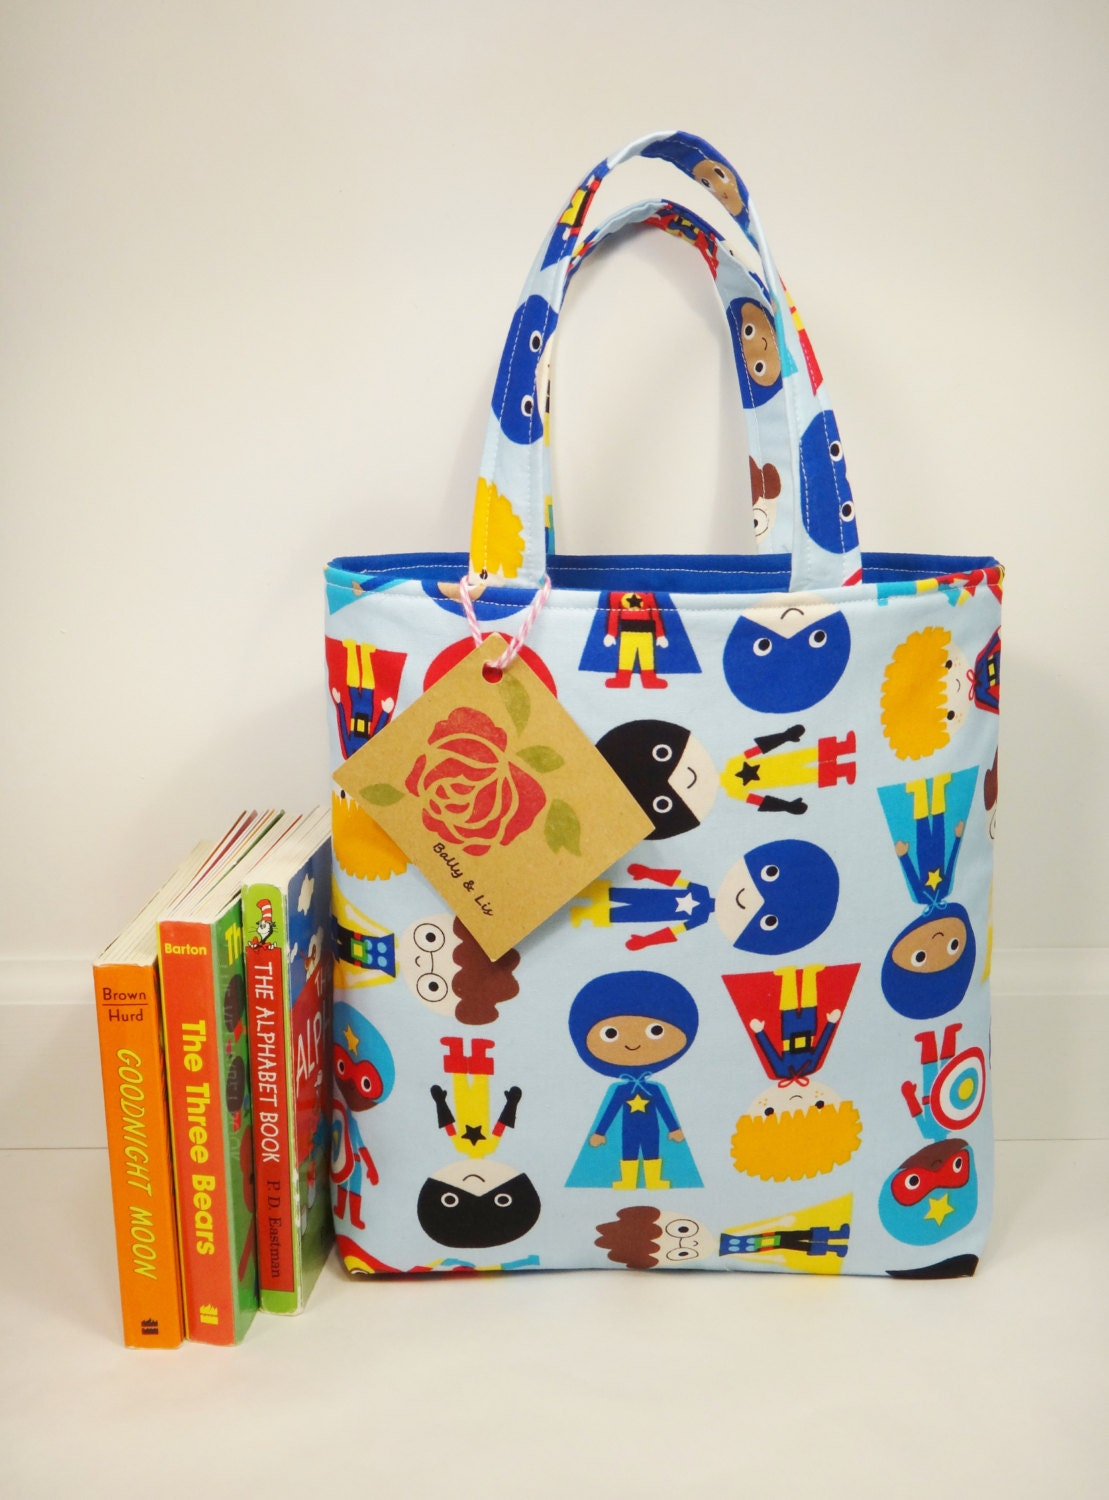 Superhero Tote Bag Mini Tote Bag Boys Bag Toddler Tote Bag